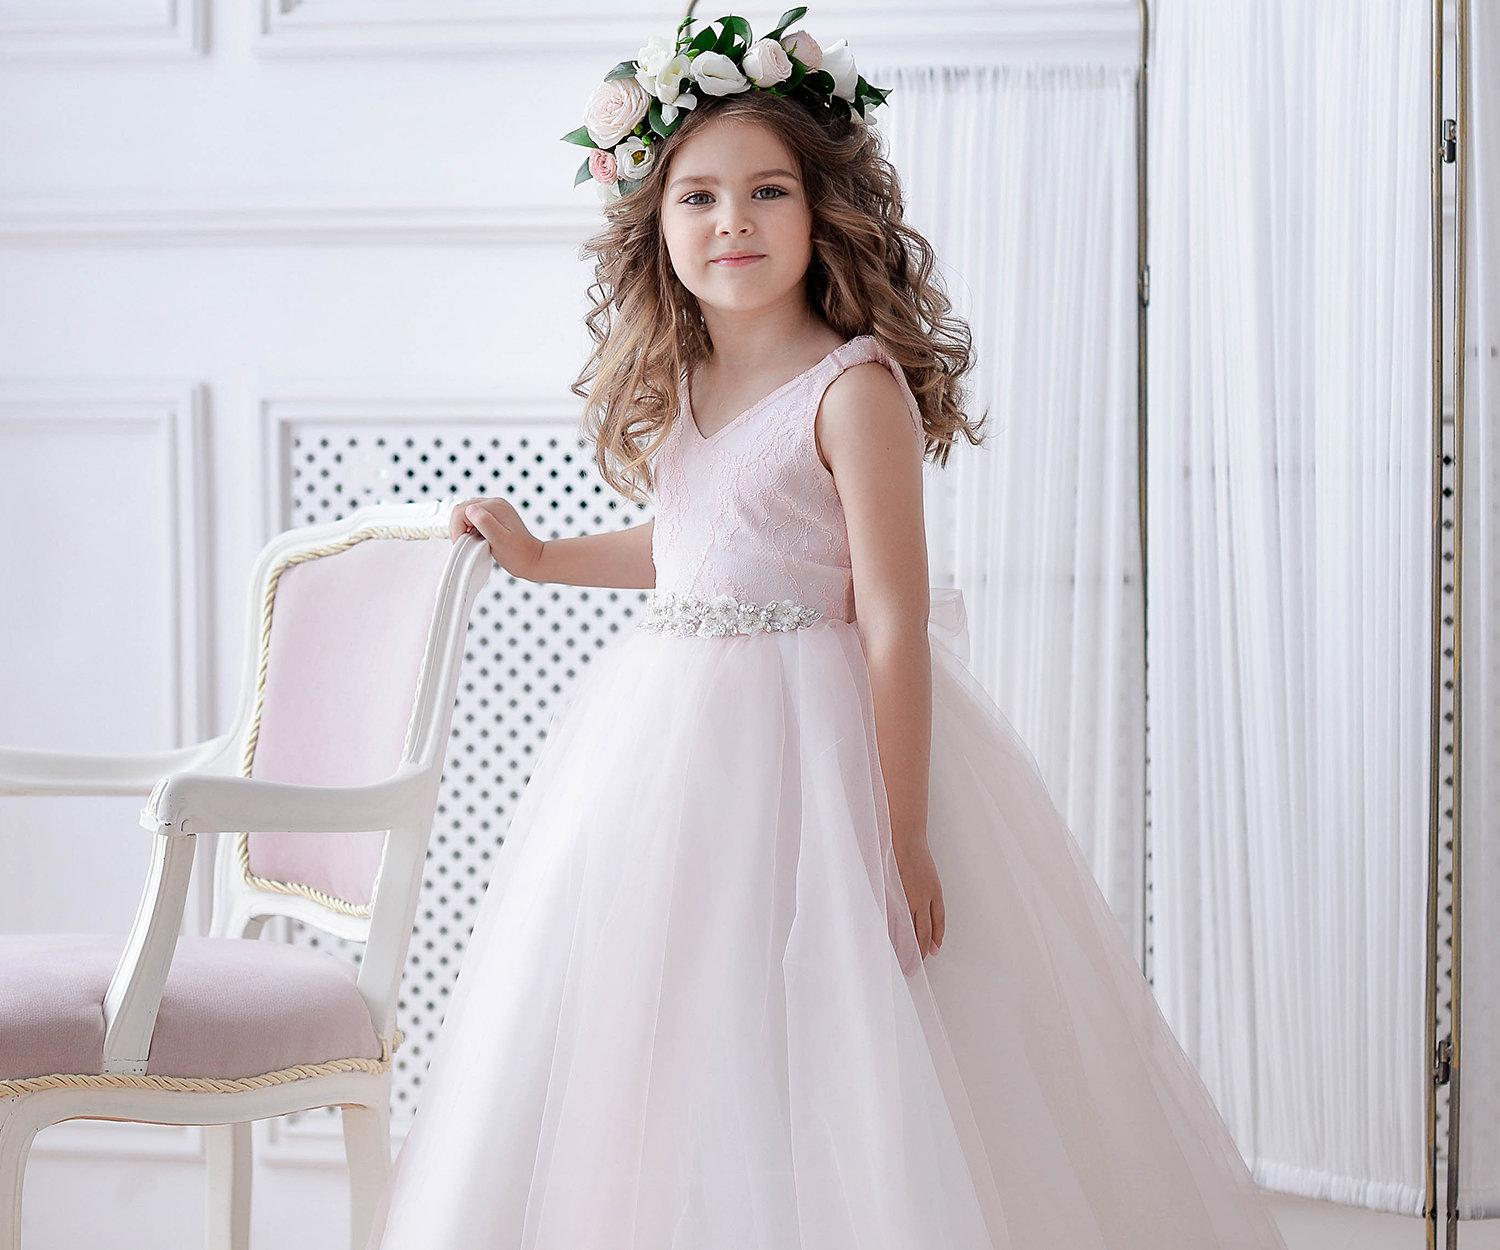 f506db17de Blush Flower Girl Dress Tulle Pink Bridesmaid Baby Little Girl Special  Occasion Tutu Wedding Toddler Formal Occasion Party Dresses Little Girls  Formal ...